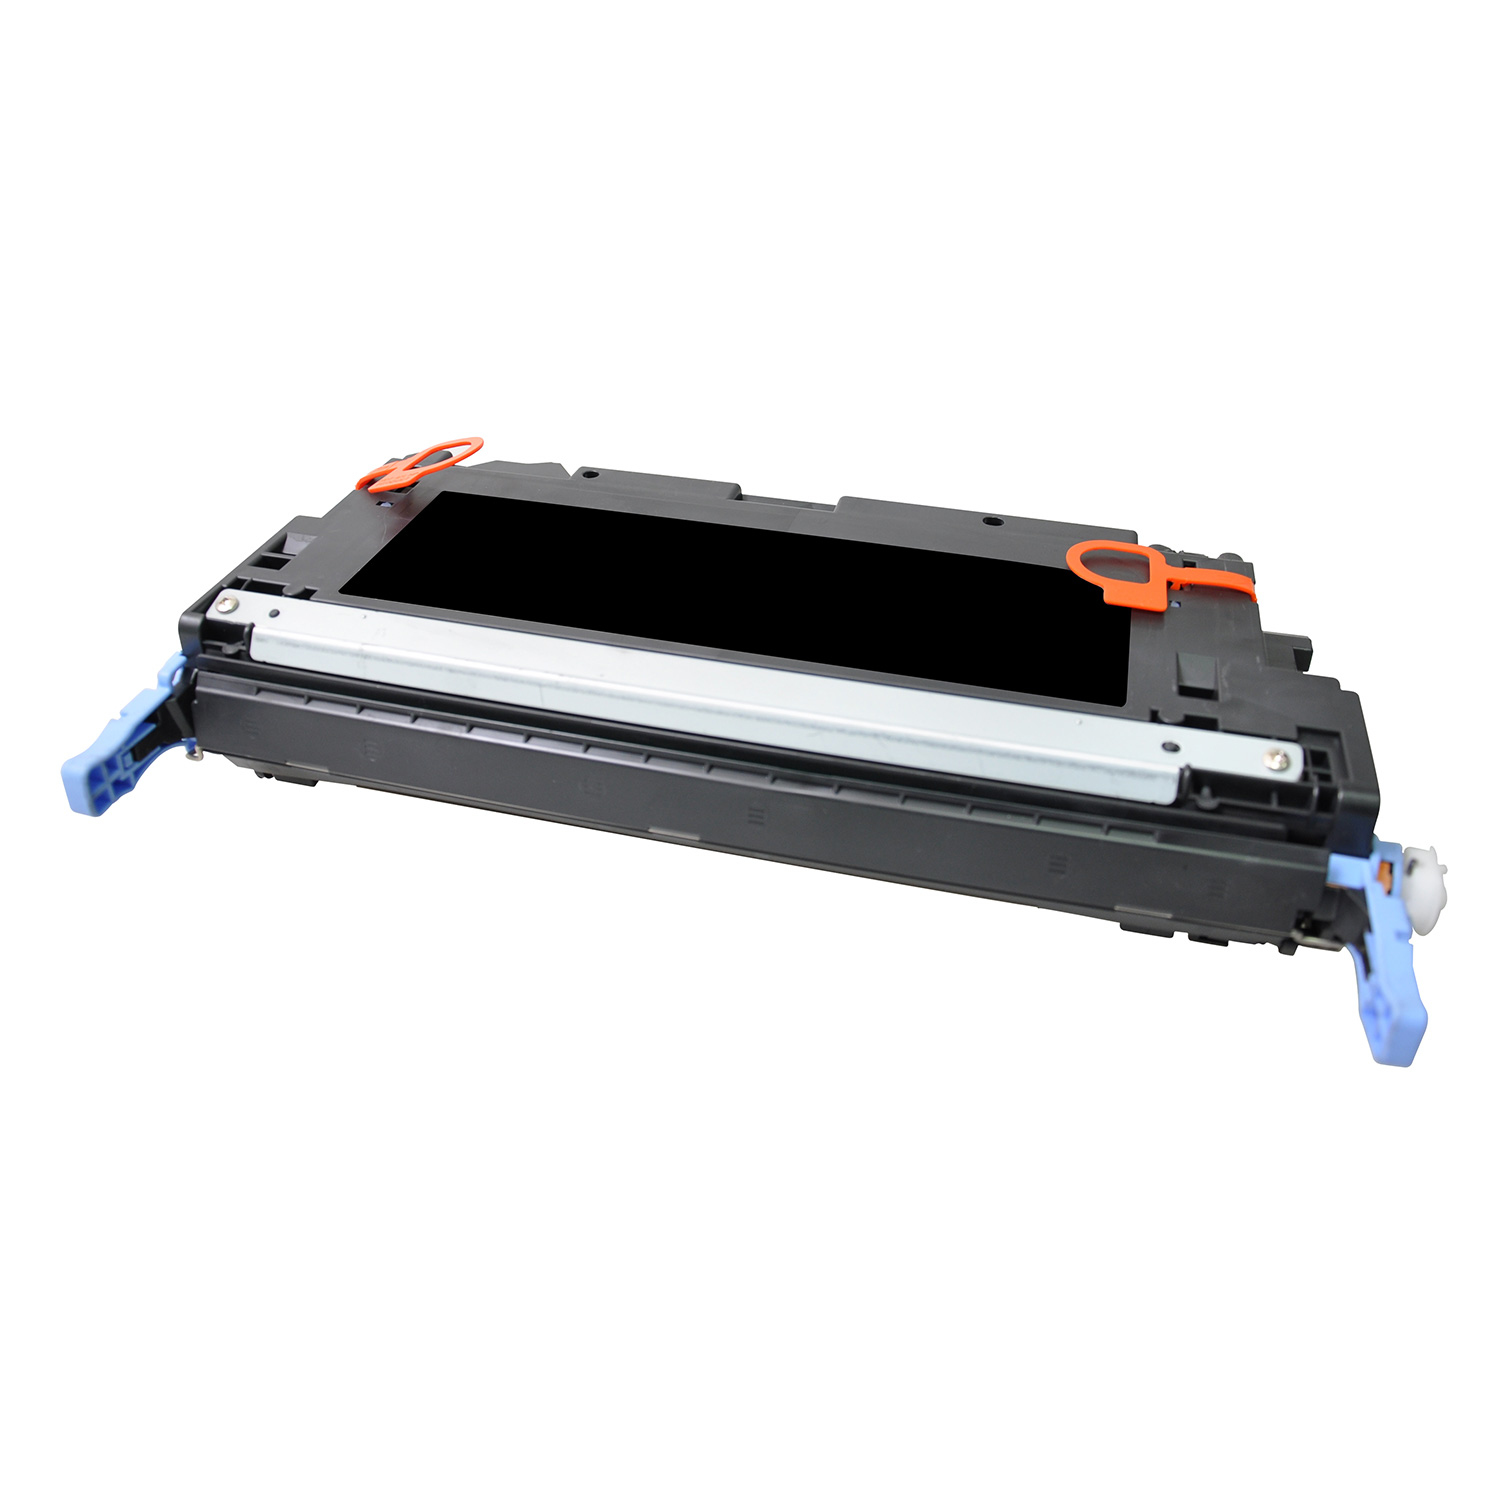 V7 Laser Toner for select HP printer - replaces Q6470A